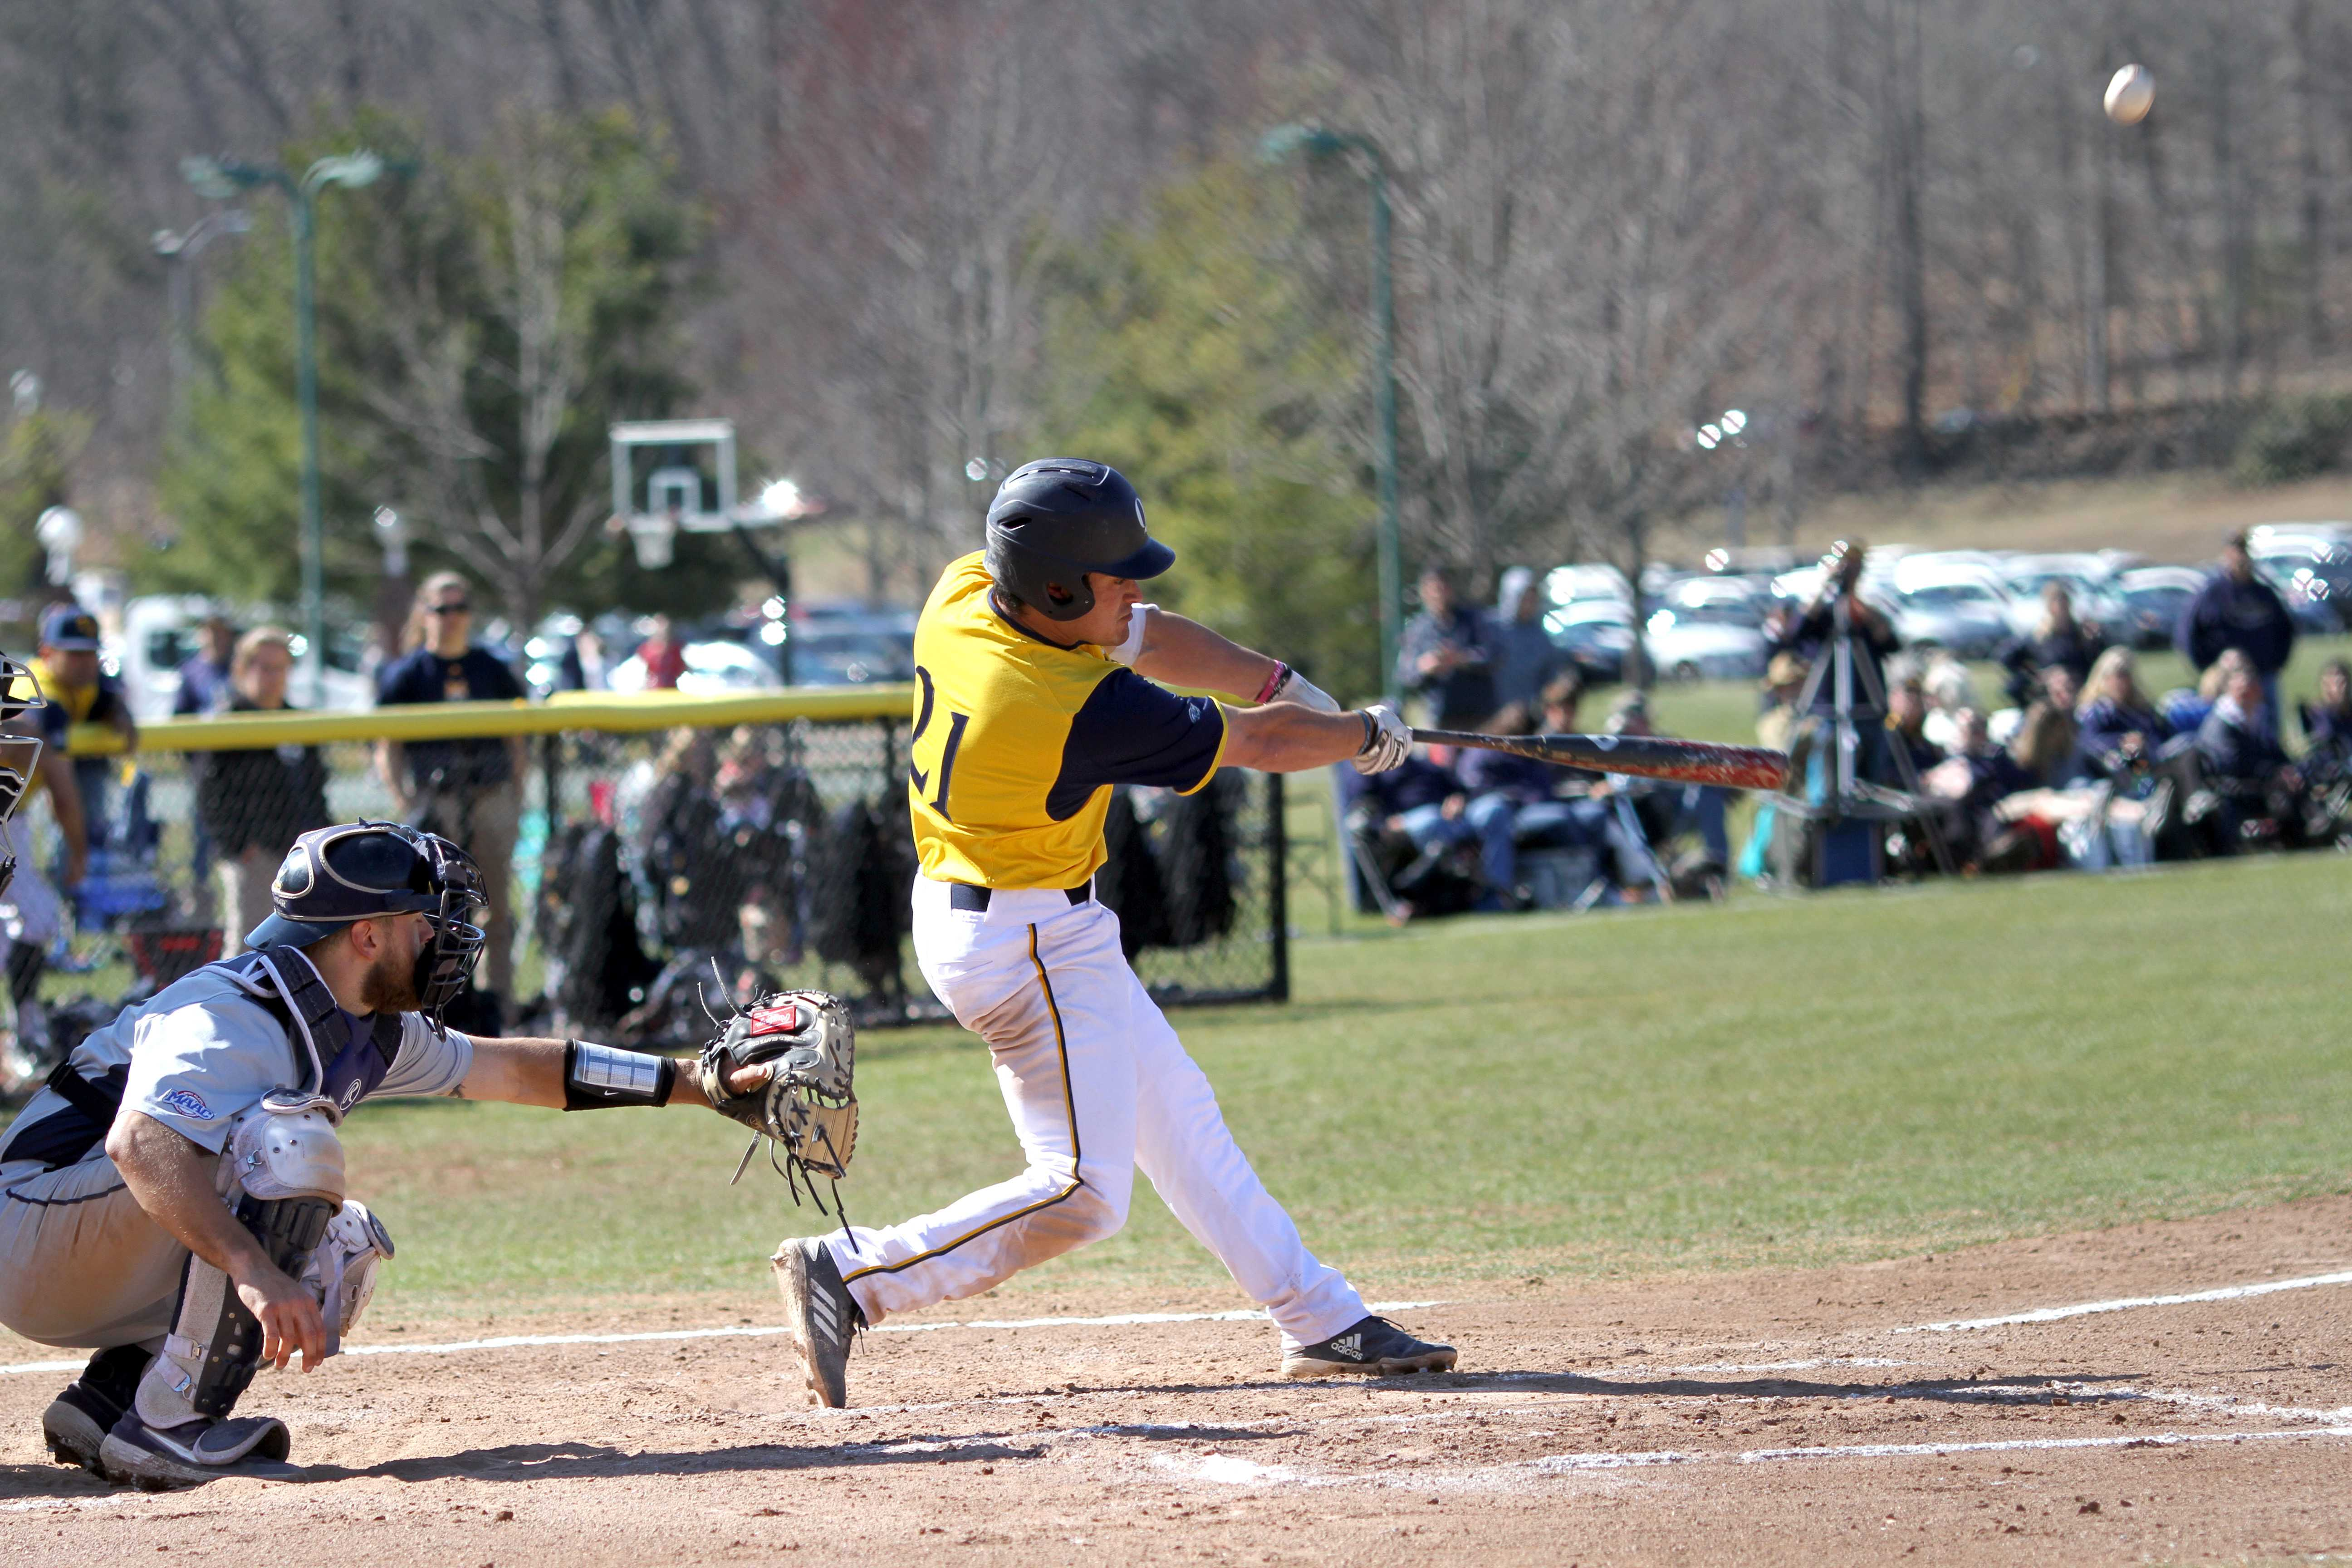 Quinnipiac baseball drops both games on Saturday against Canisius